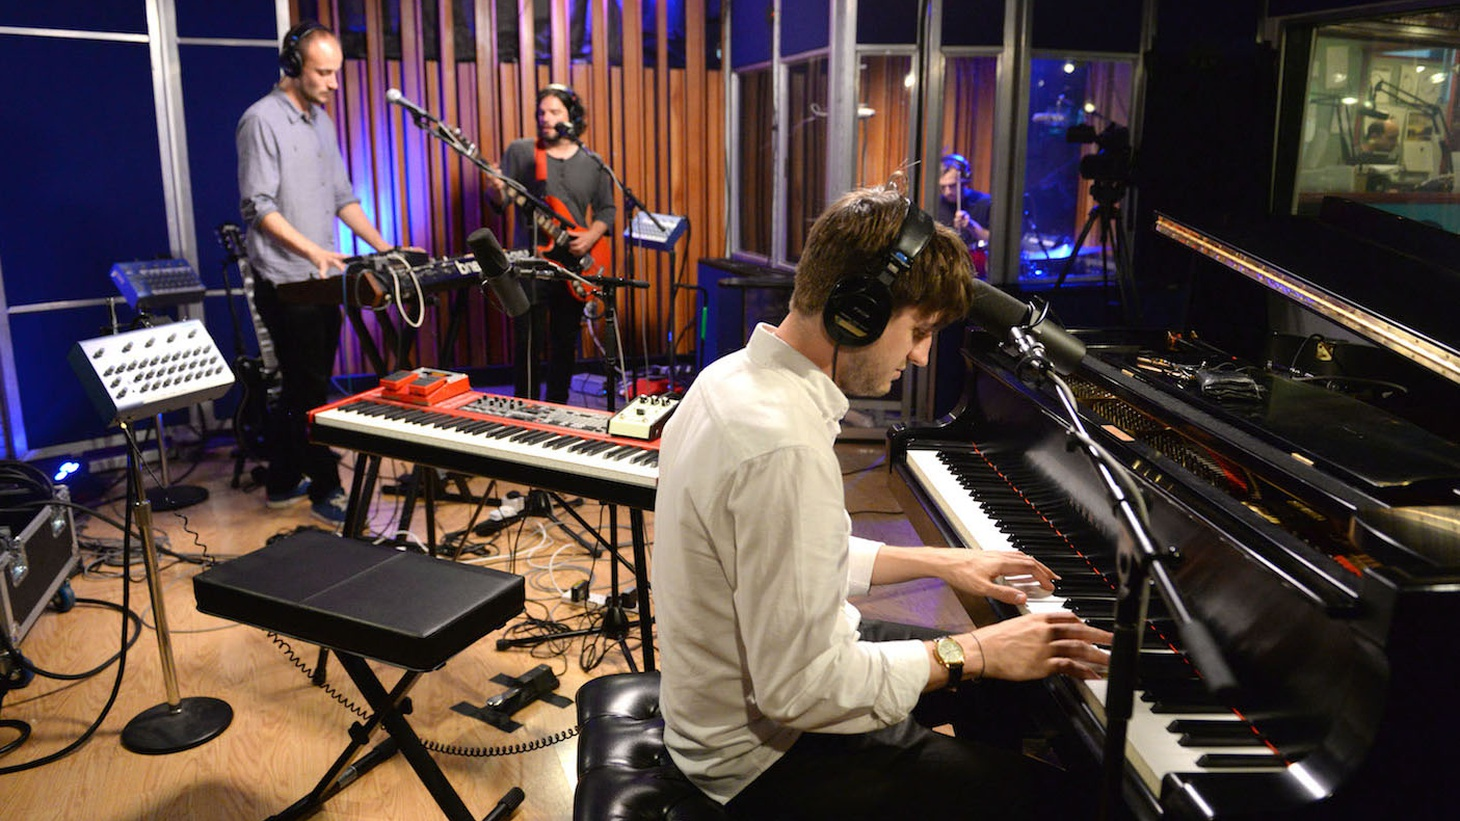 Boxed In's debut album has been a KCRW favorite for months now and we welcome the London-based quartet -- led byproducer/songwriter Oli Bayston -- into our studio for a live session.